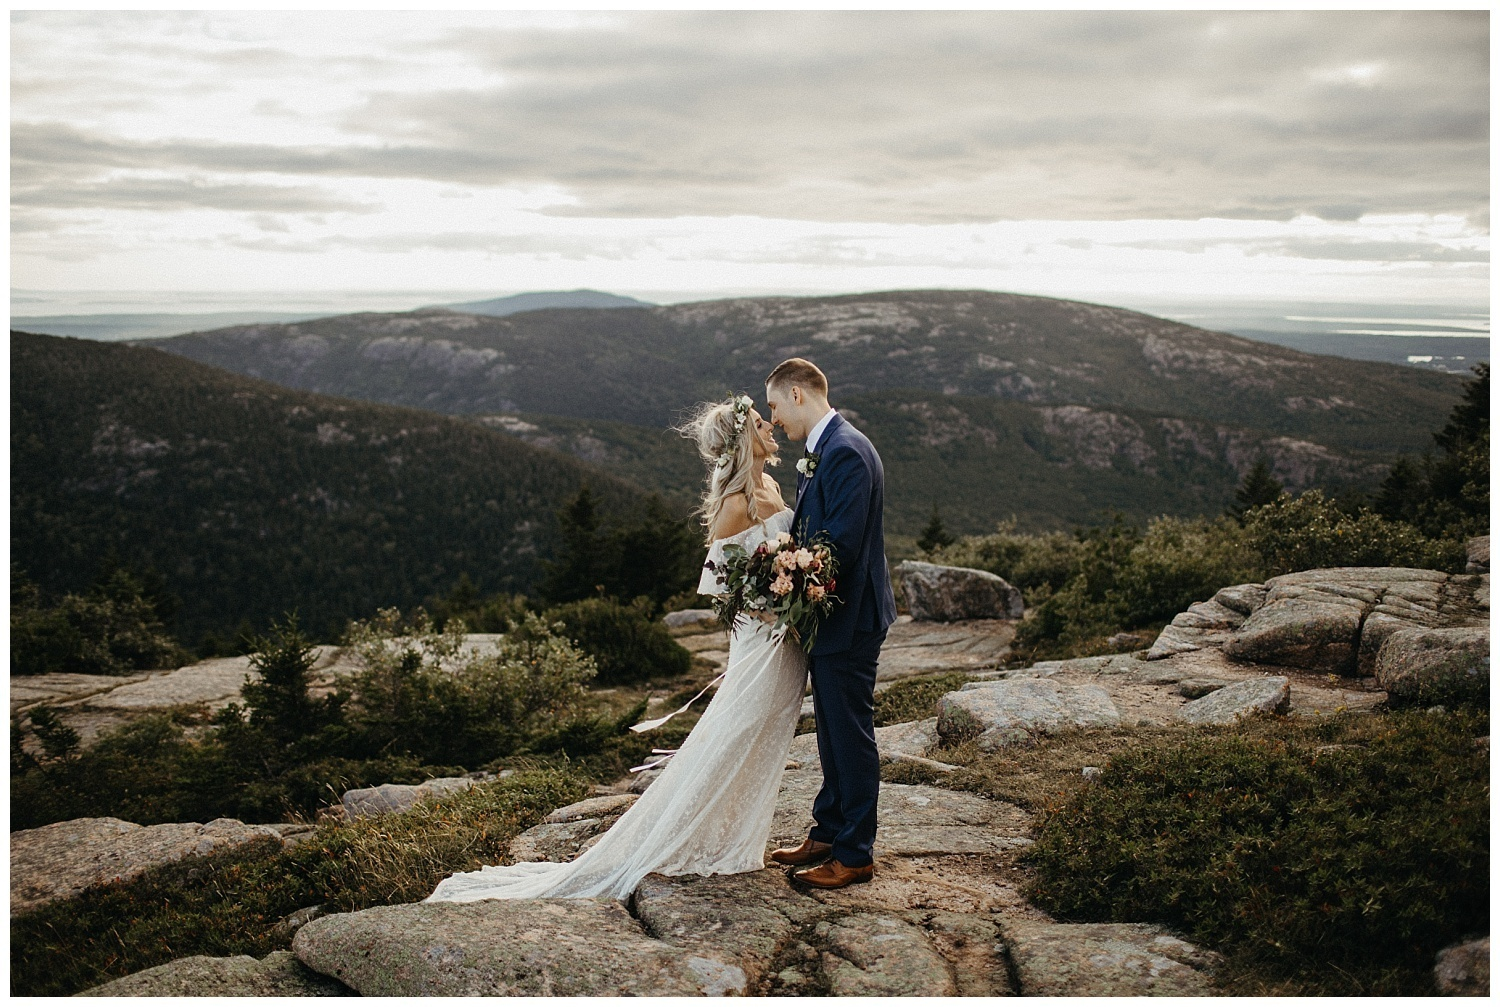 Boho-wedding-at-acadia-national-park-bride-wearing-off-the-shoulder-lace-gown